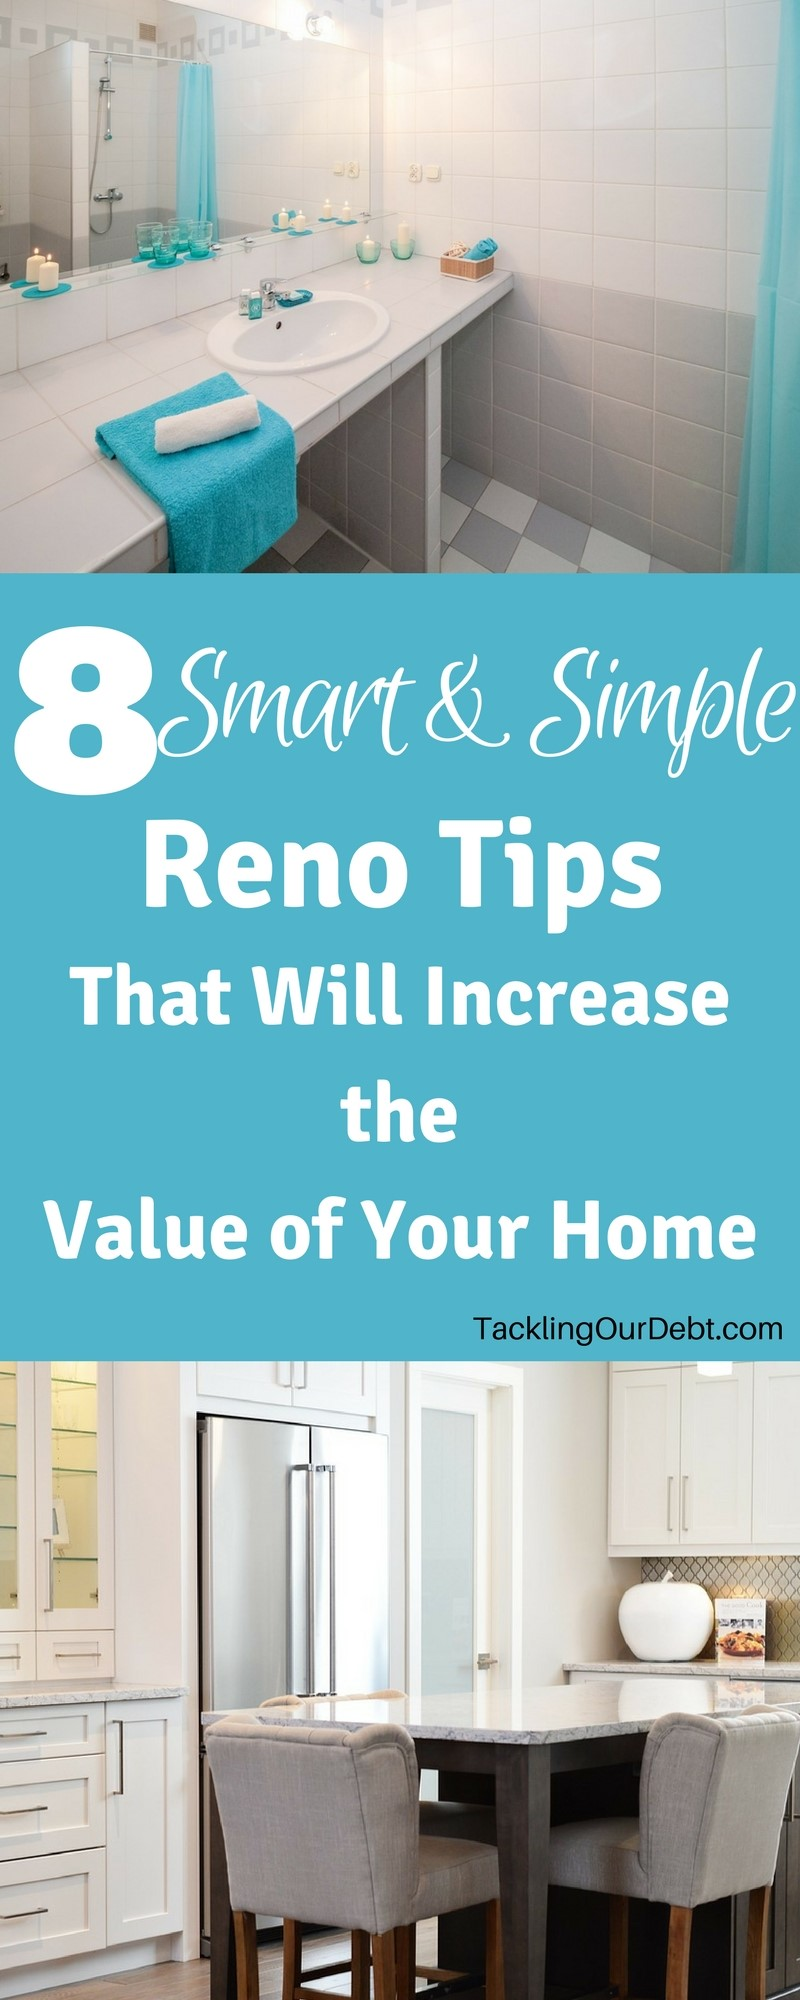 Increase the Value of Your Home With These Smart and Simple Reno Tips